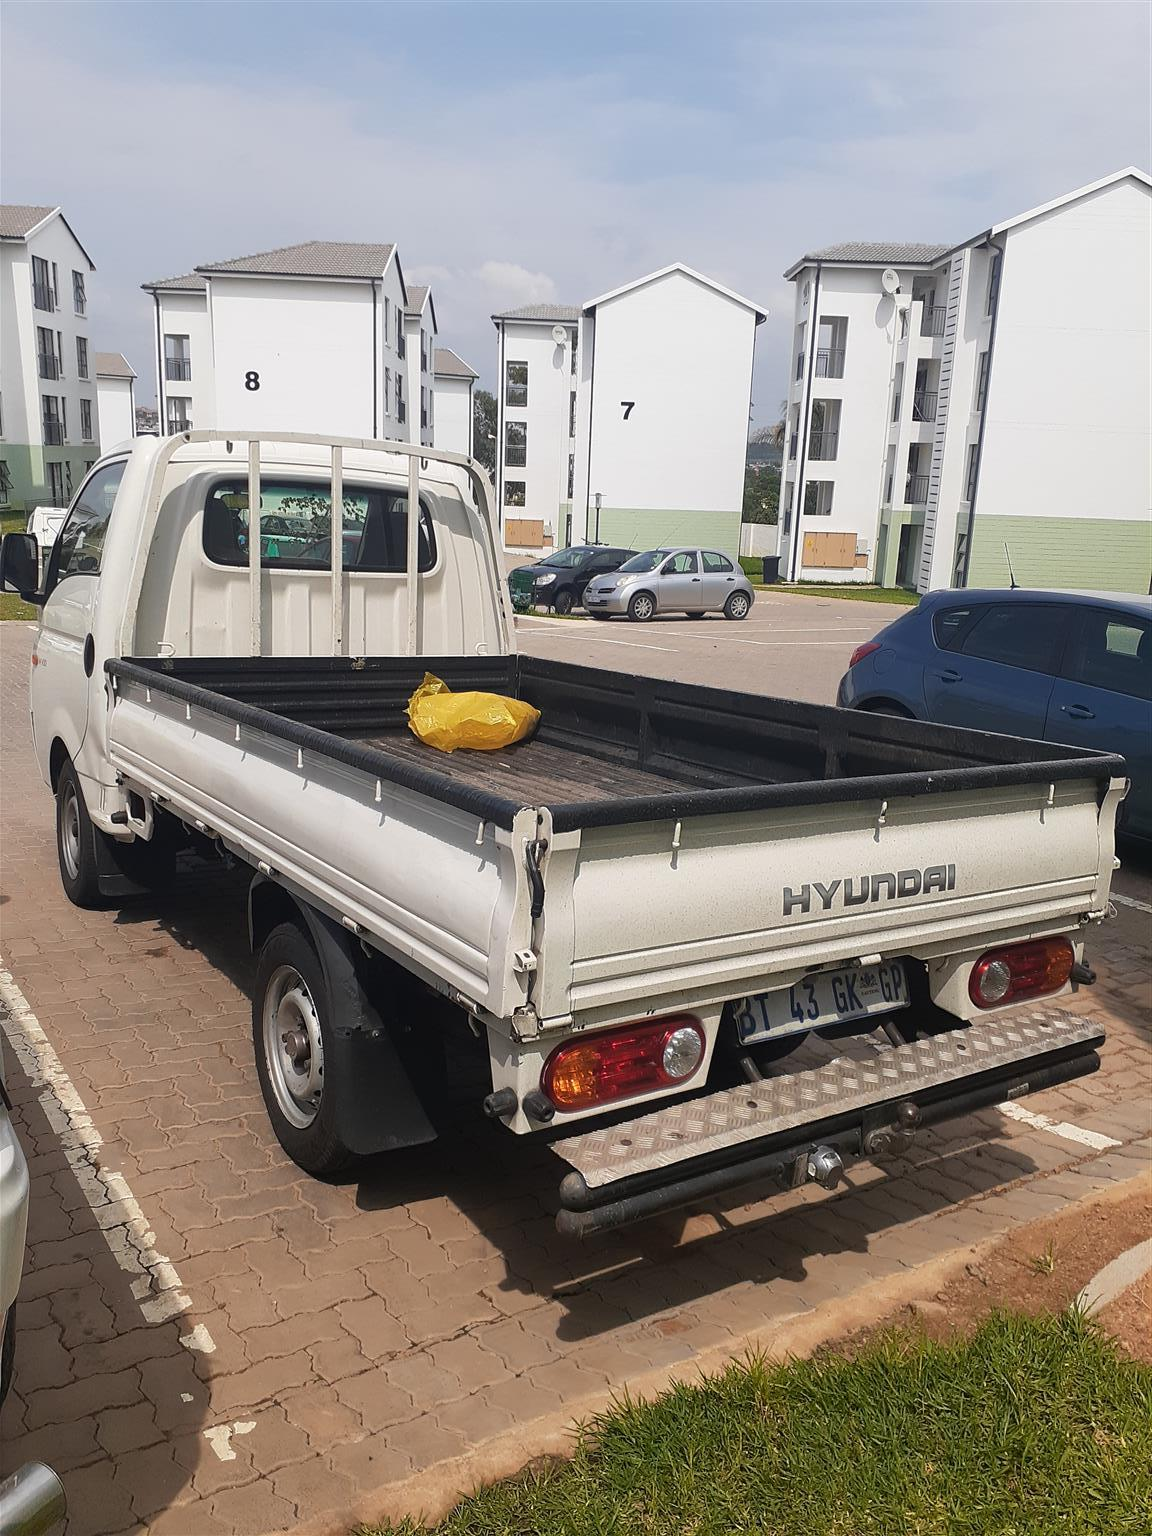 Furniture removals,Transport and Bakkie for hire